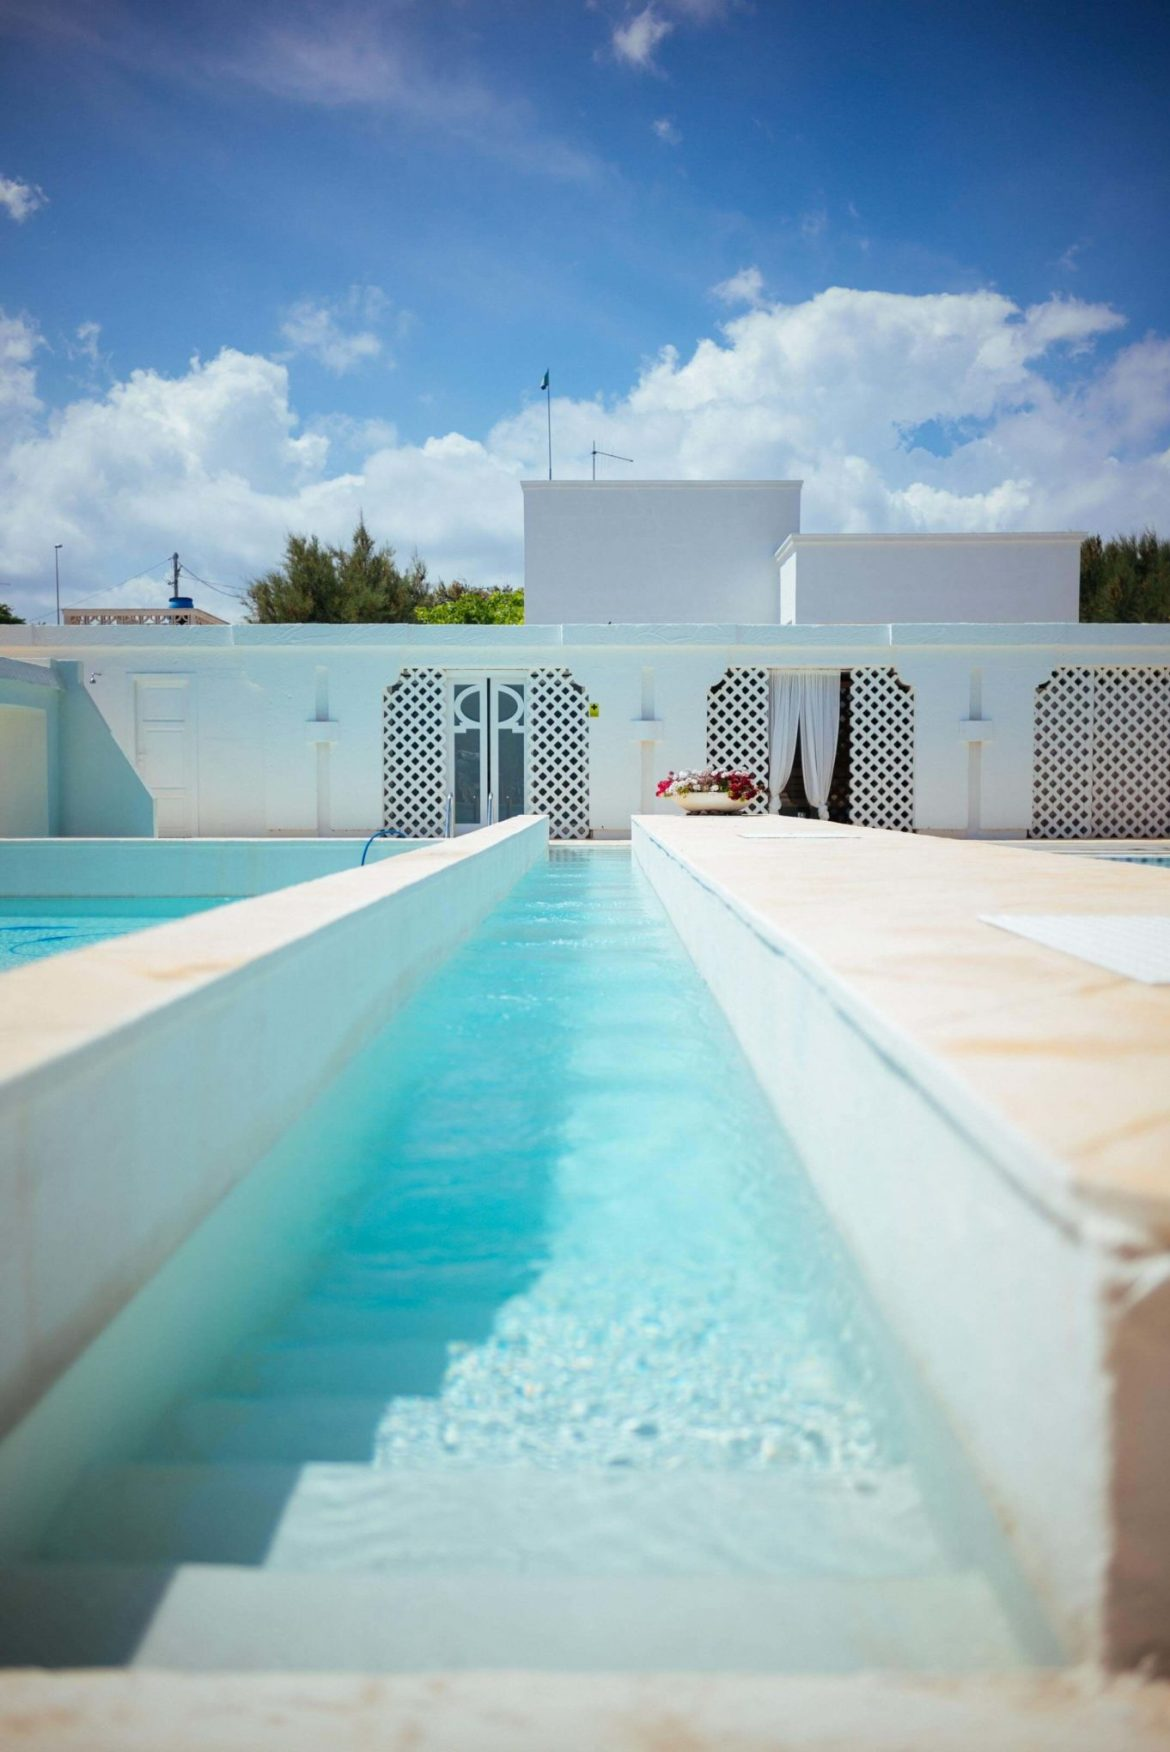 You'll find multiple shapes and sizes of pools at the luxury Puglia hotel La Peschiera just south of Monopoli, Italy, The Taste Edit